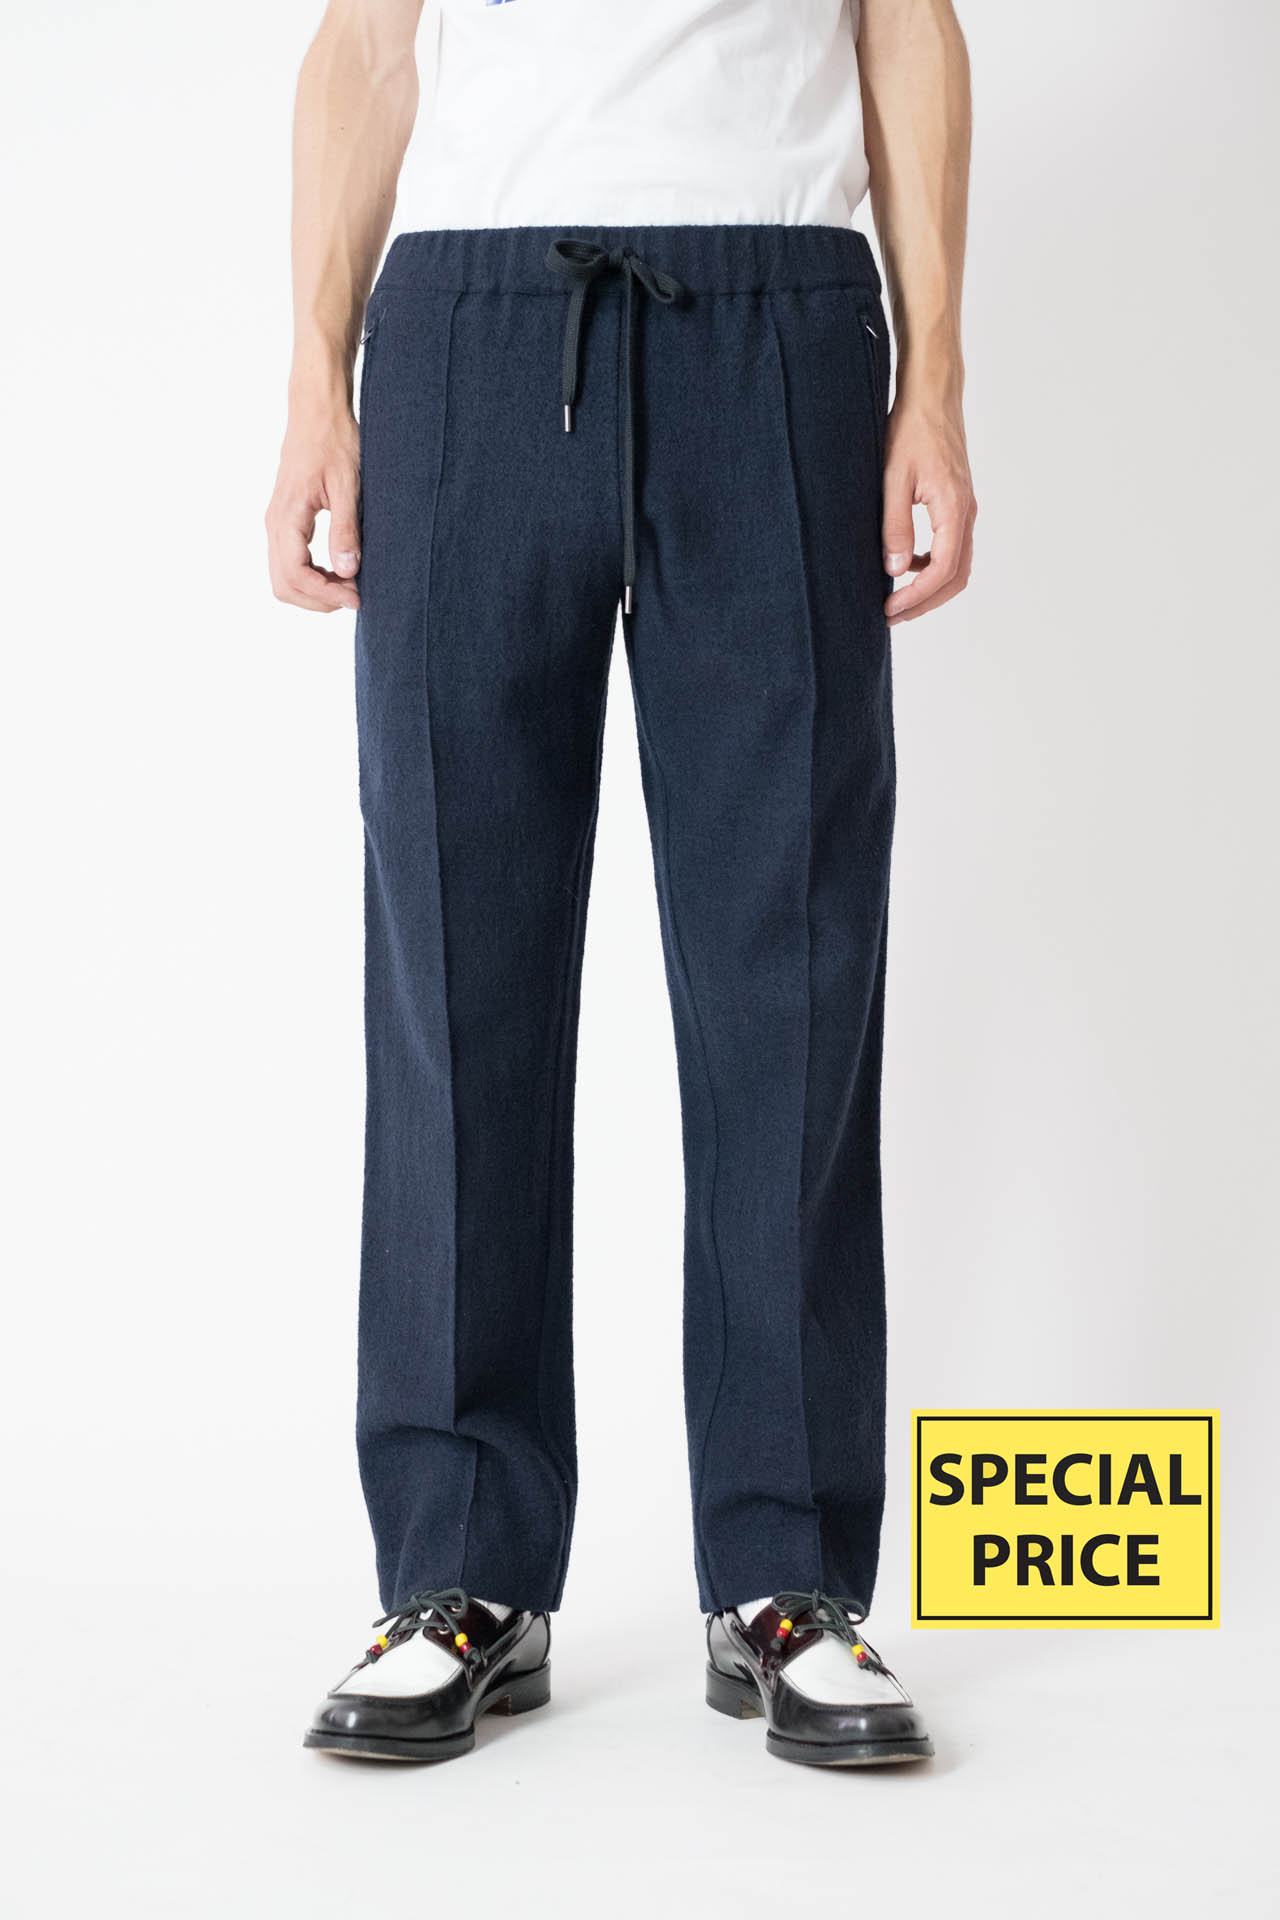 Andrea Pompilio Trousers Runner